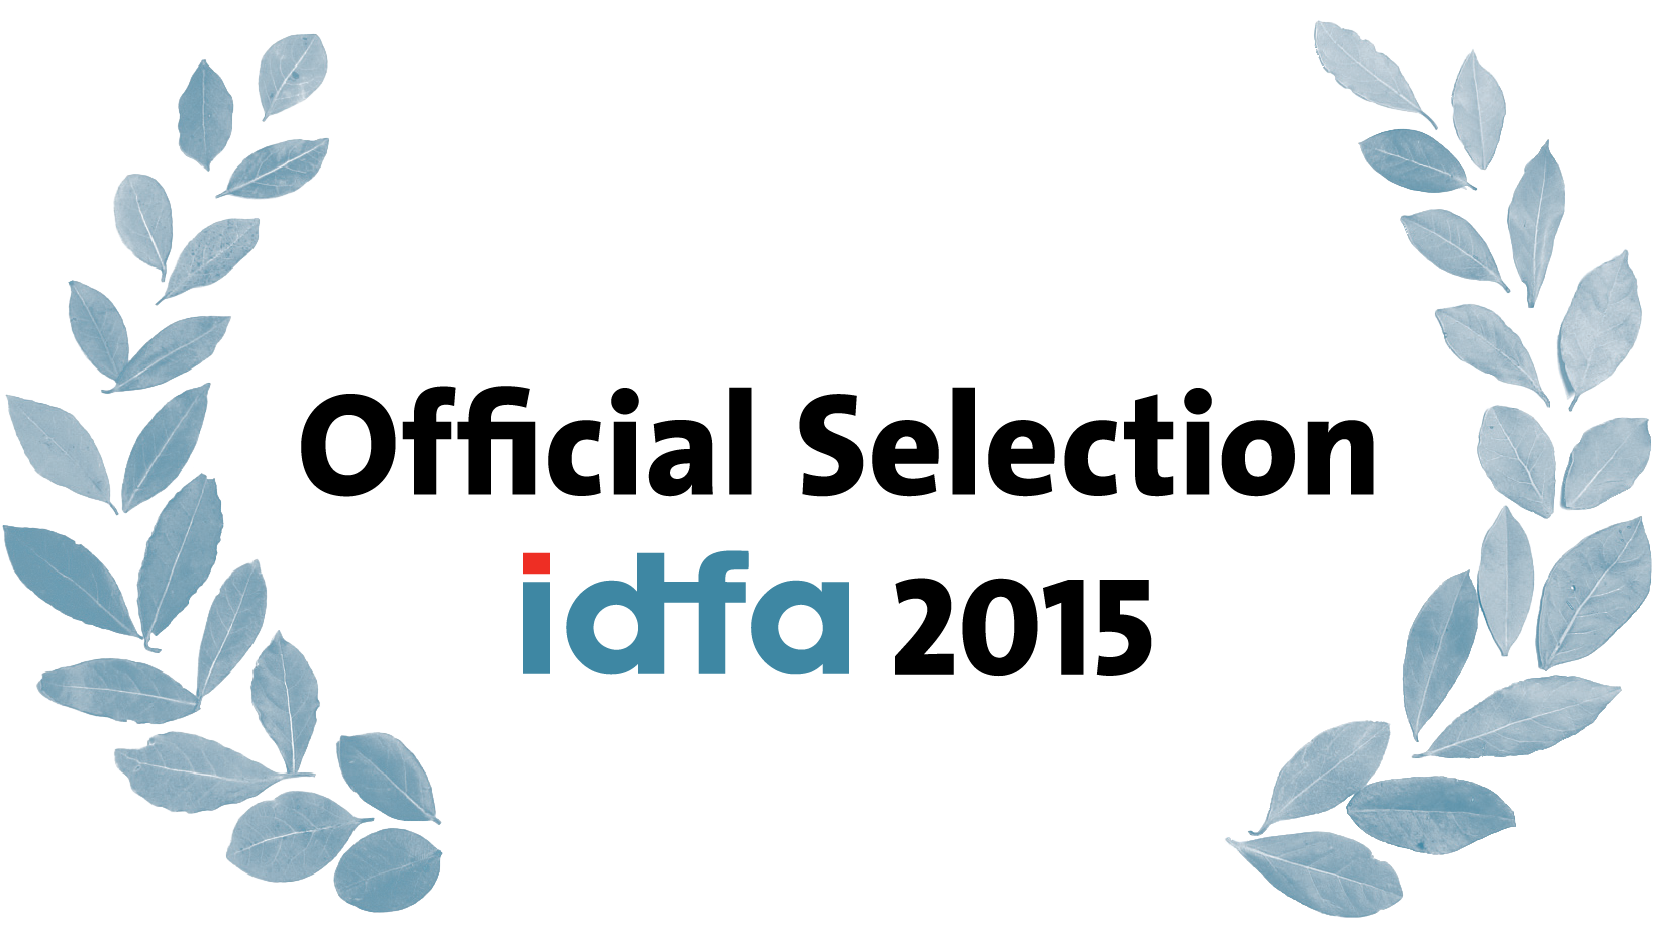 IDFA laureaat official selection 2015_transparent-01-01.png